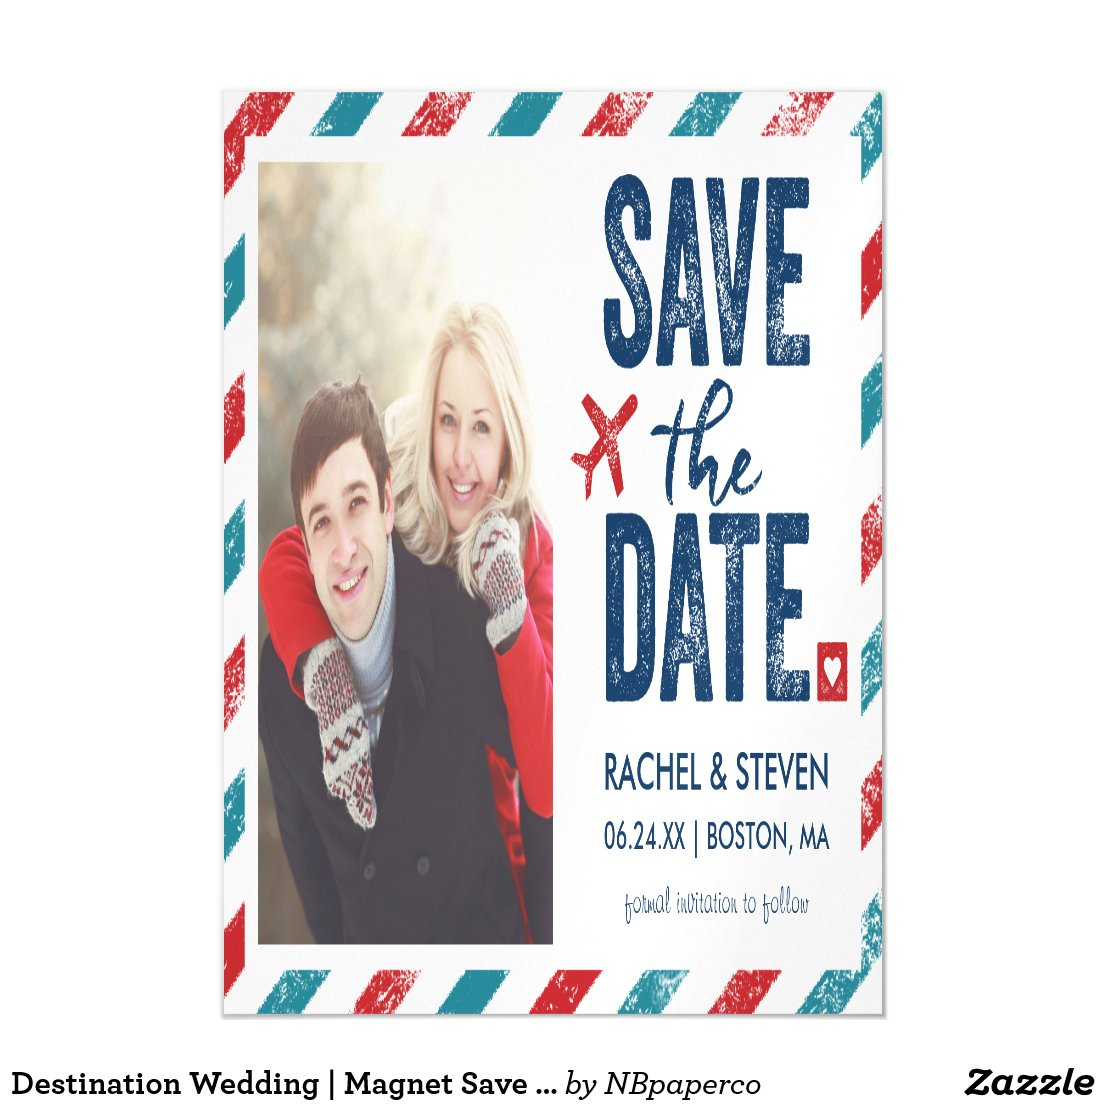 Destination Wedding | Magnet Save the Date